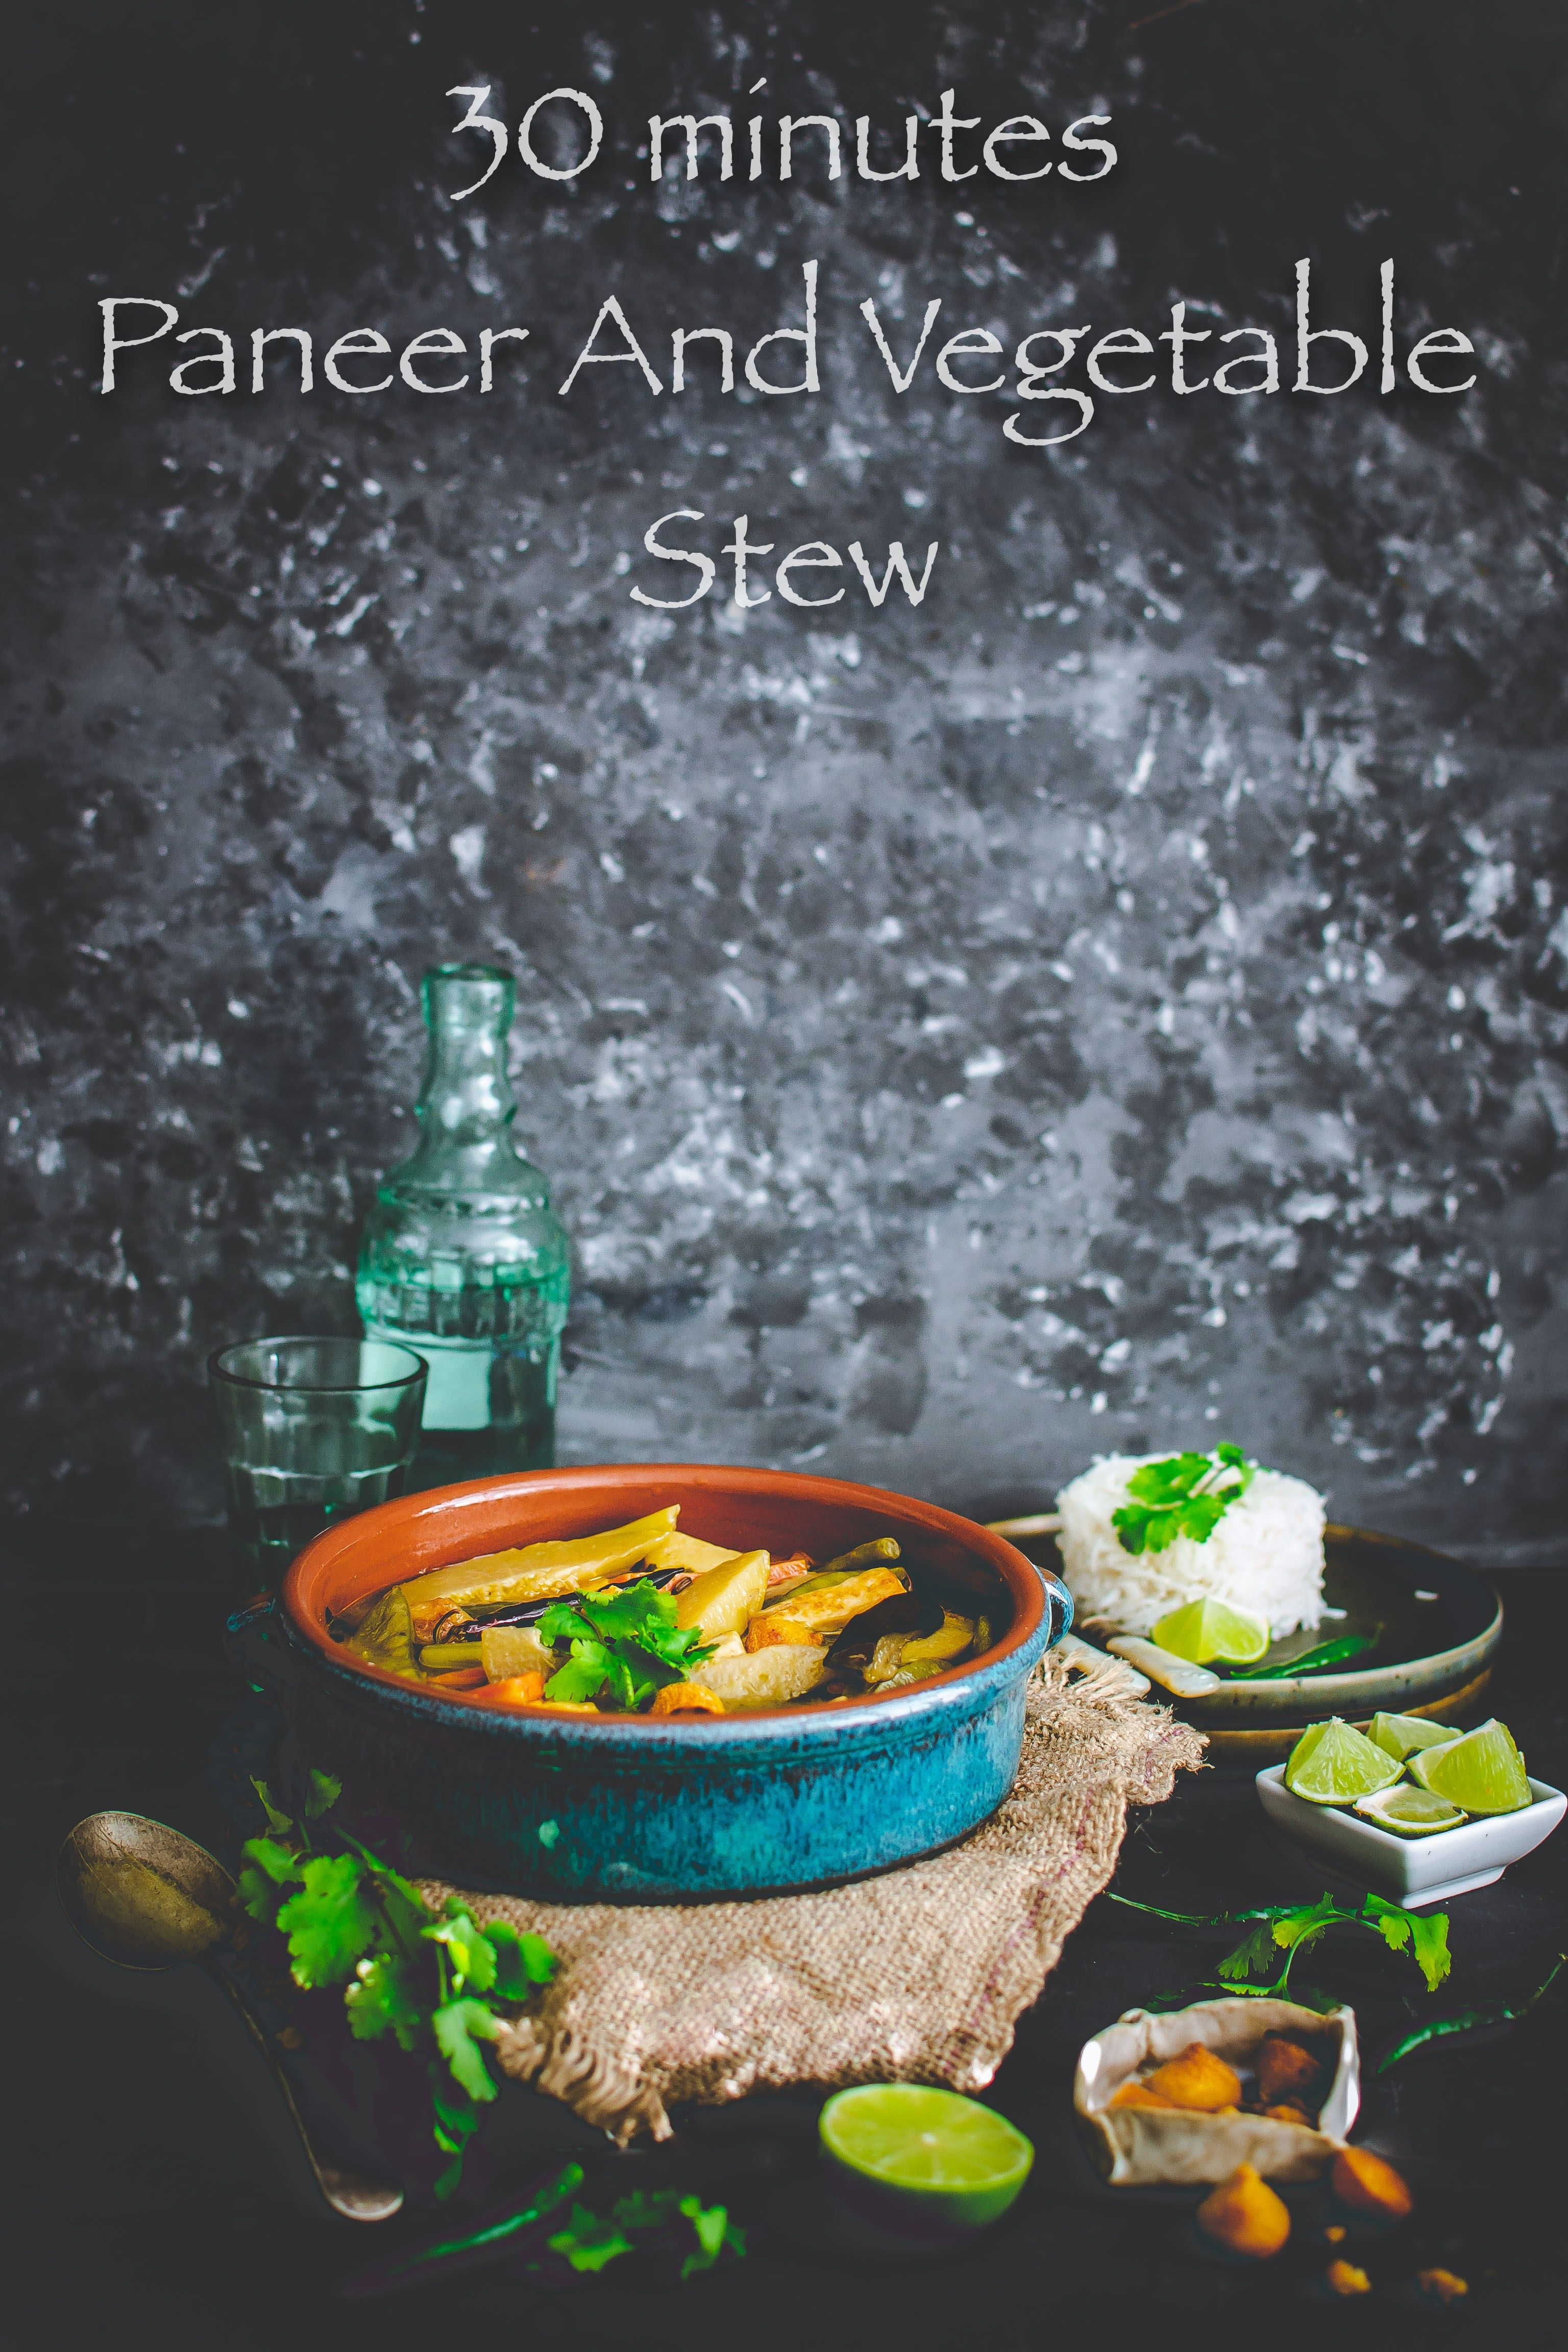 30 minute Paneer Vegetable Stew - Gastronomic BONG